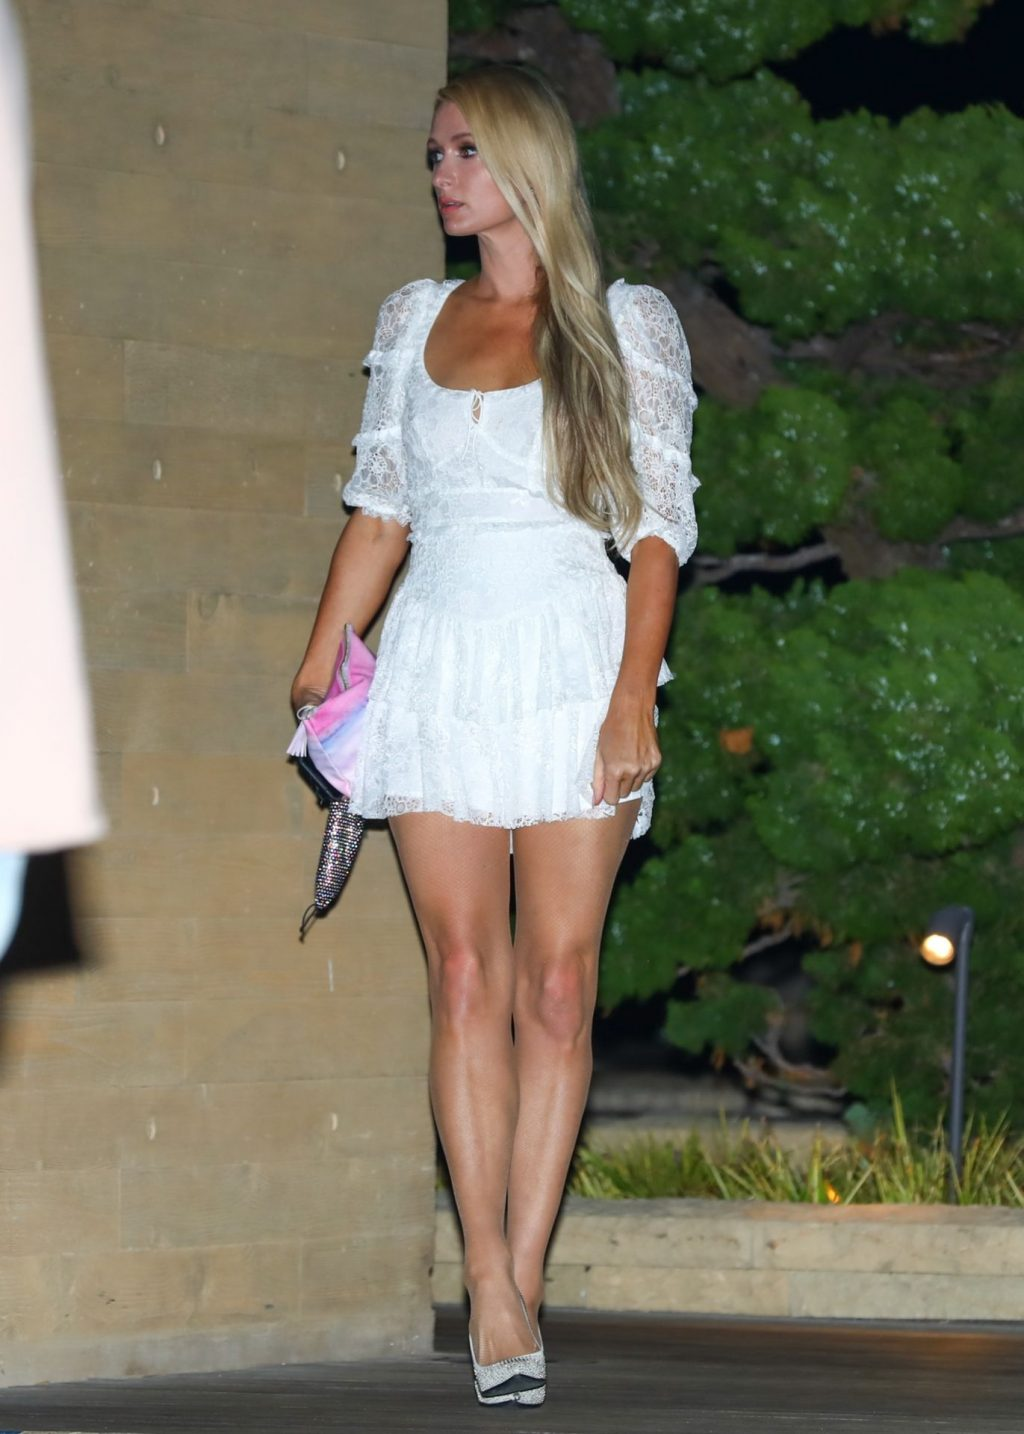 Paris Hilton Arrives in a Short White Dress for Dinner at Nobu (44 Photos)